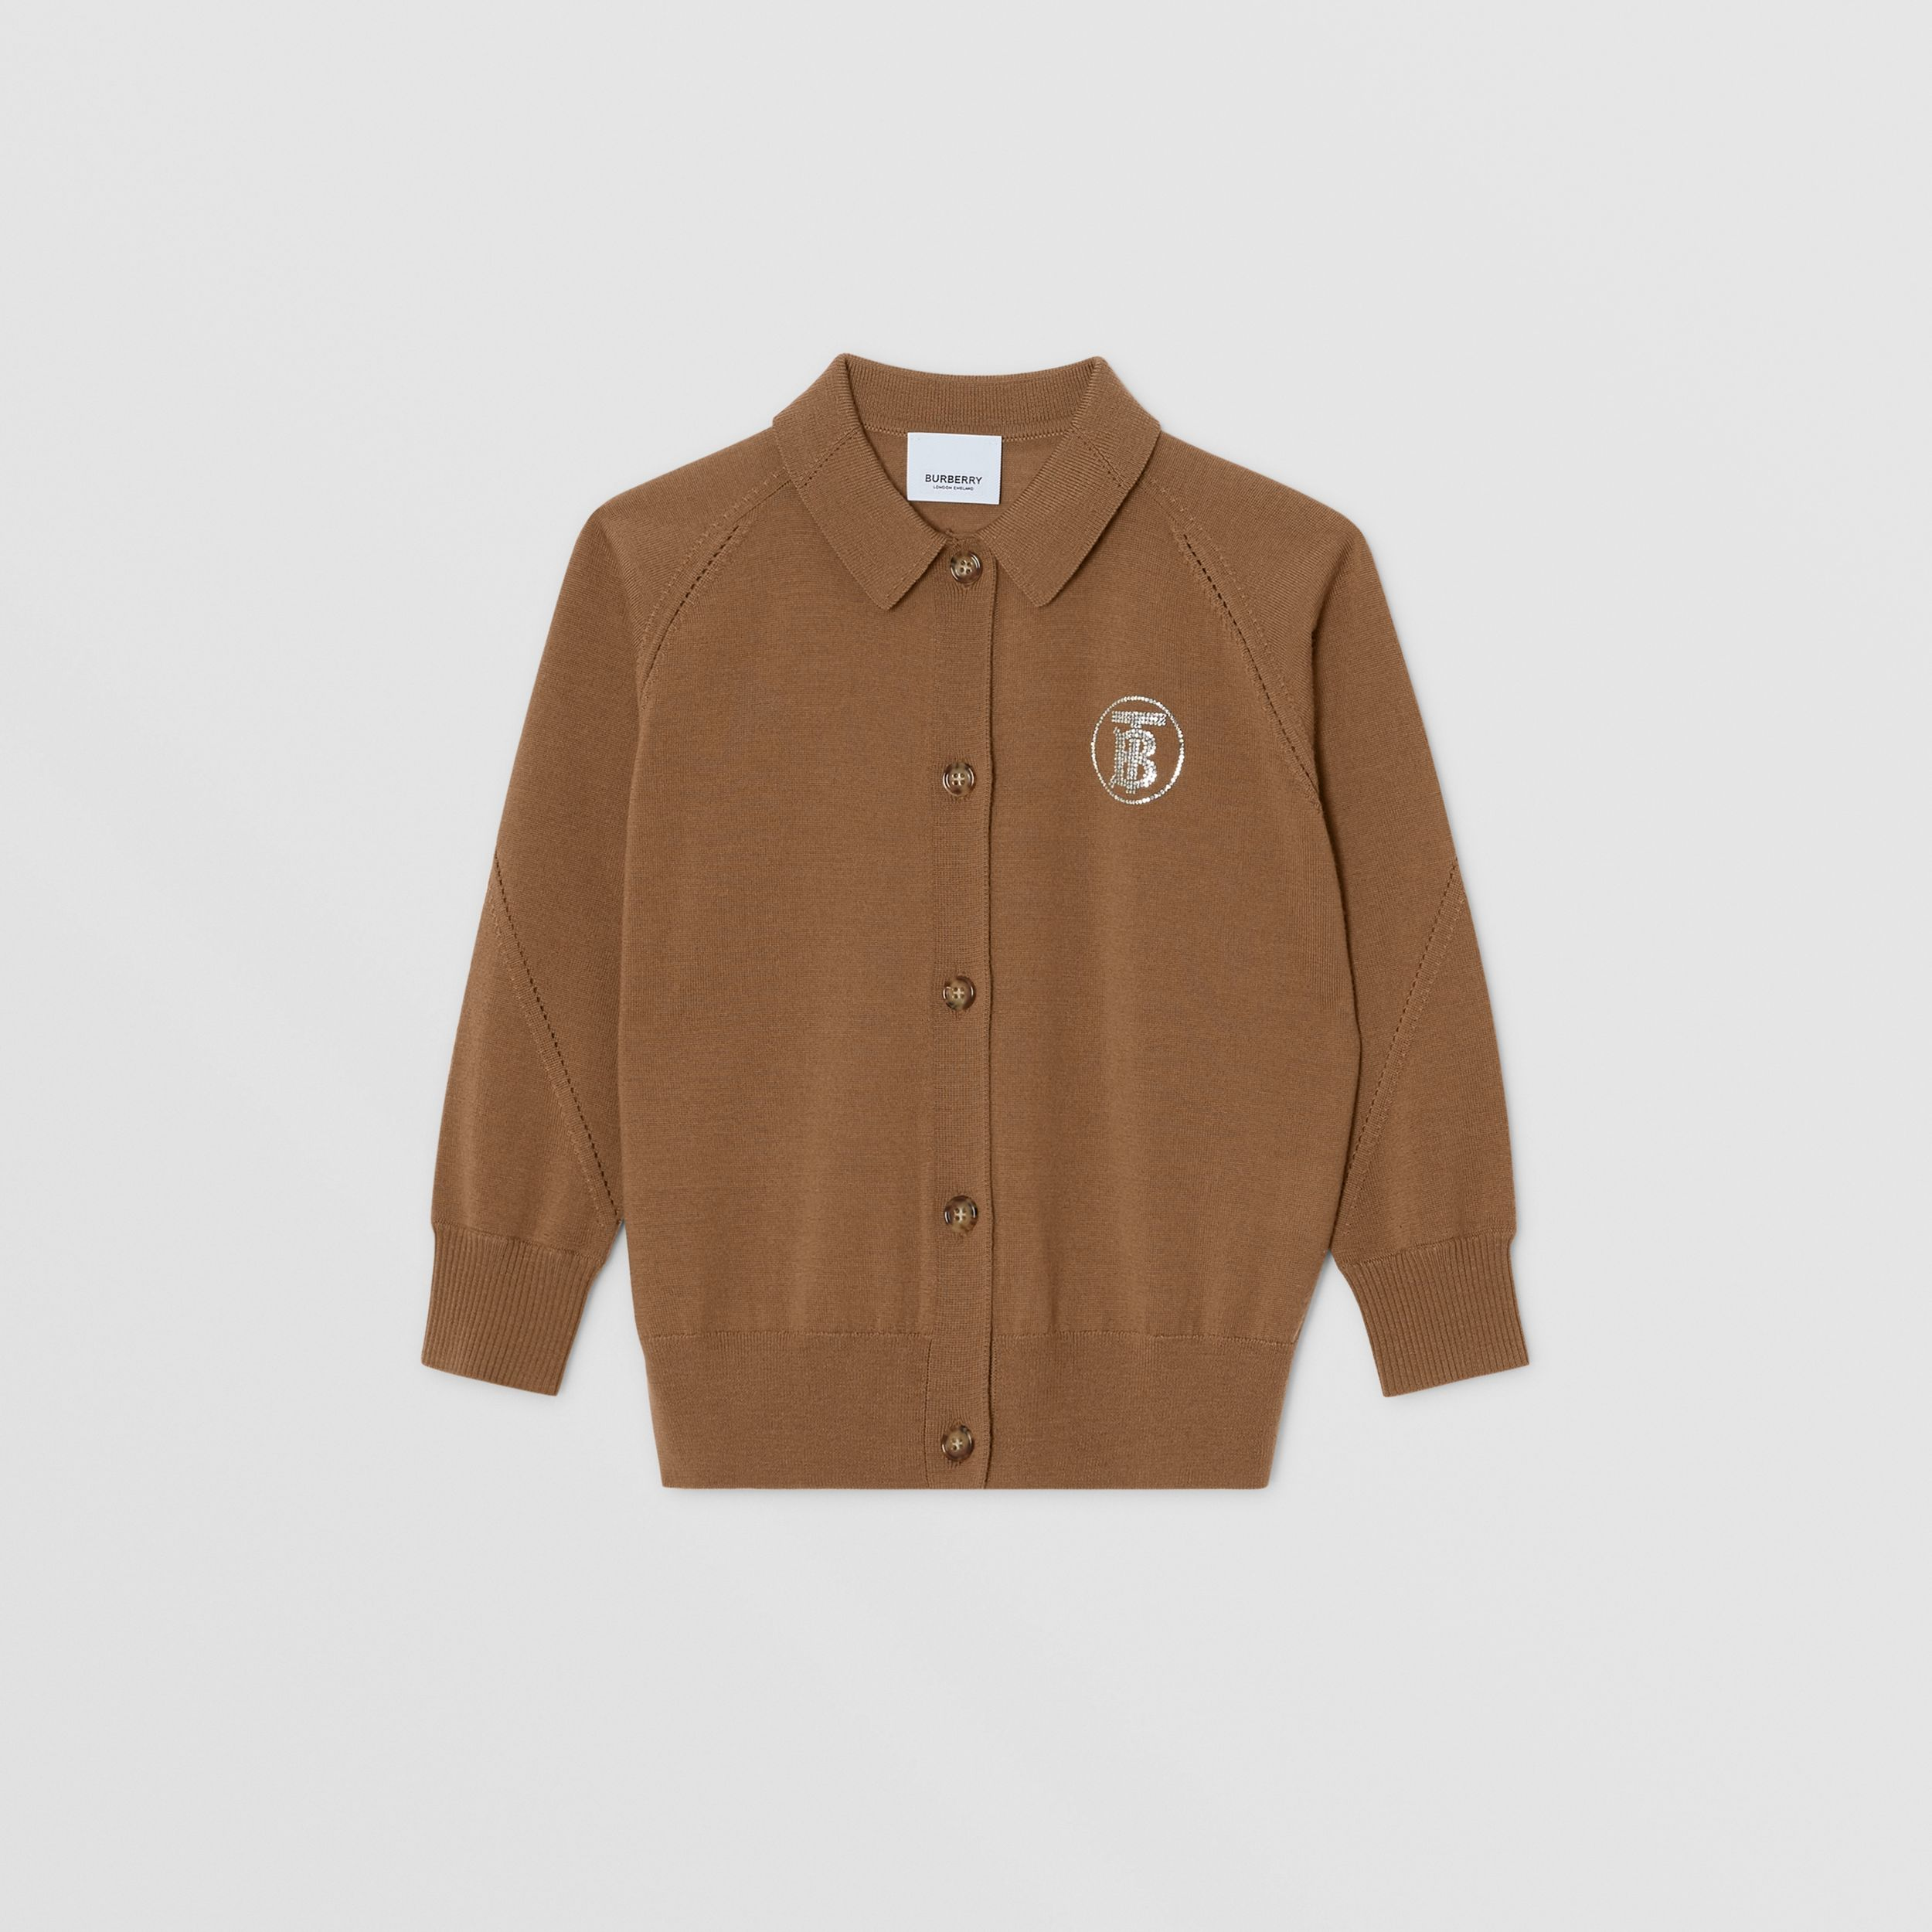 Crystal Monogram Motif Merino Wool Cardigan in Oak Brown | Burberry - 1